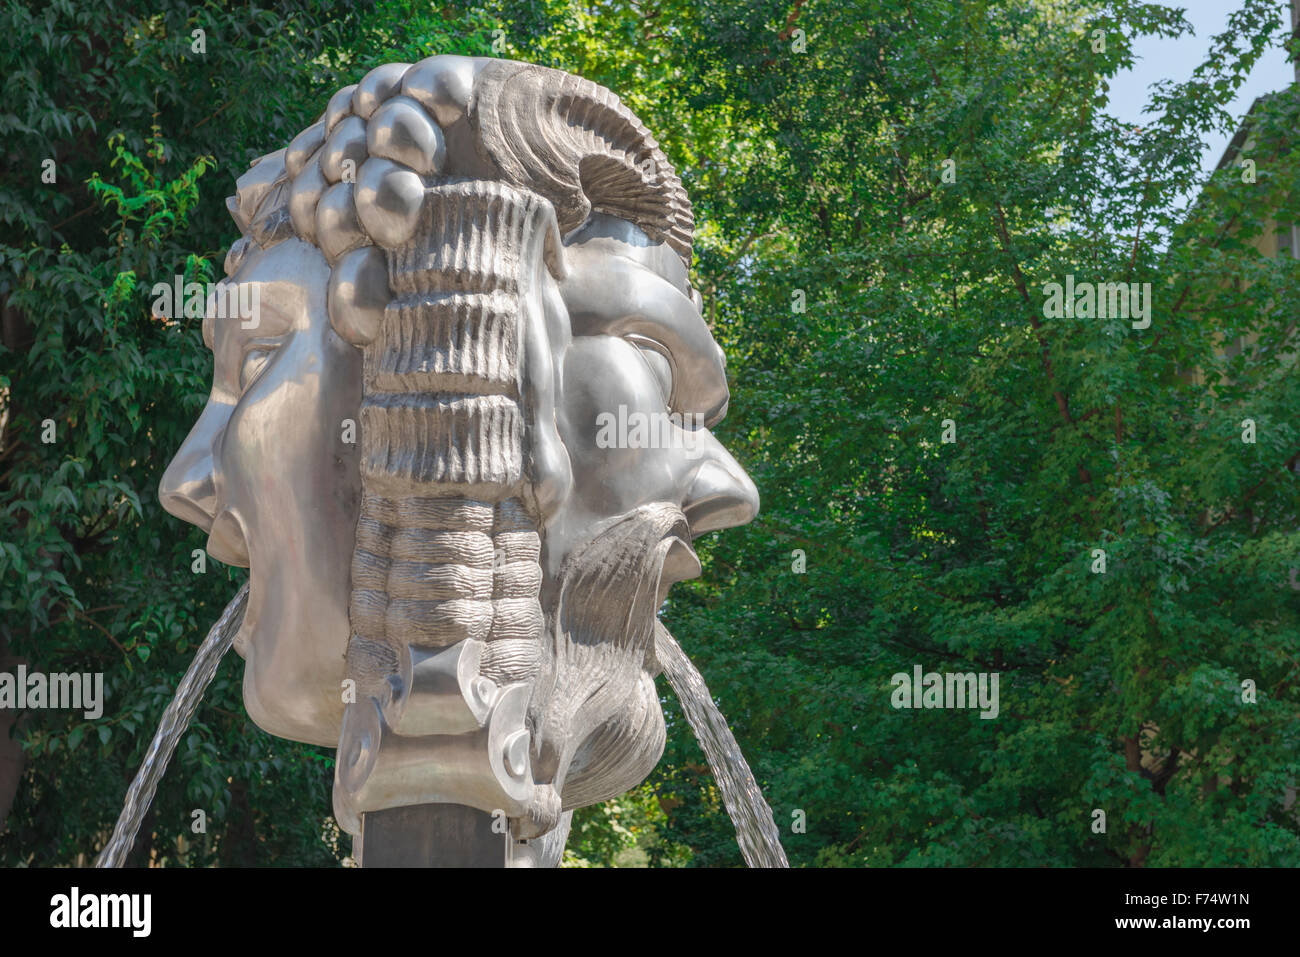 Trieste Italy, the Janus Fountain at the entance to the cafe-lined boulevard of the Viale XX Settembre in the city - Stock Image